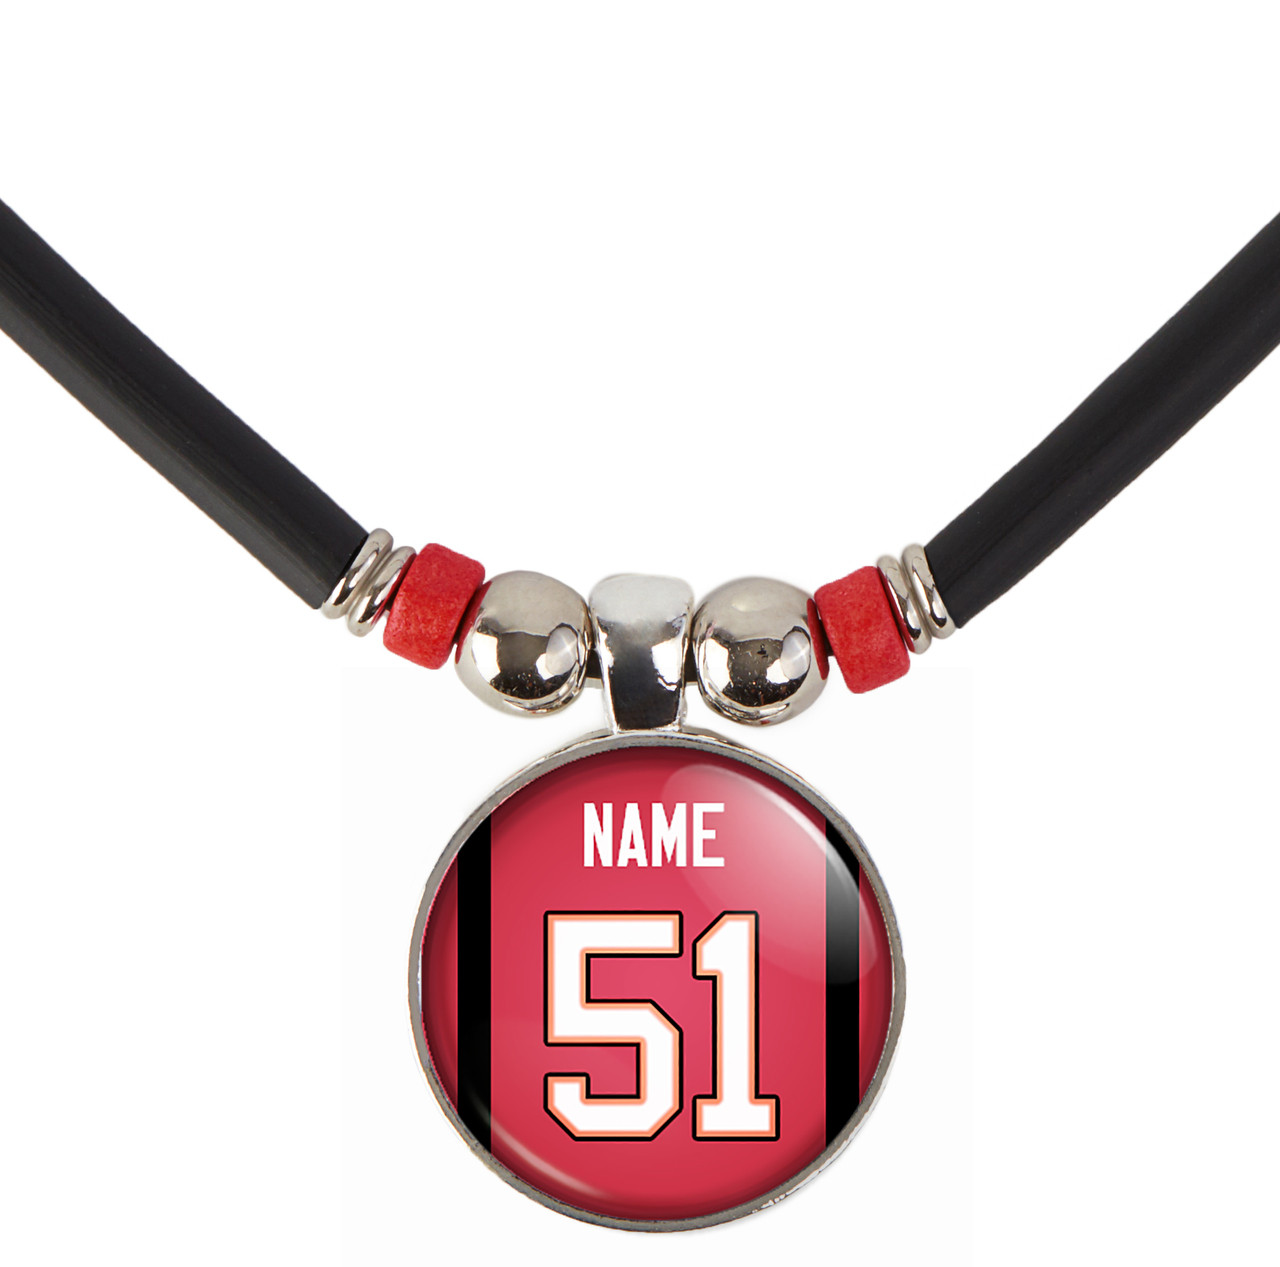 556e176fd7b Personalized Tampa Bay Buccaneers Jersey Necklace With Name ...